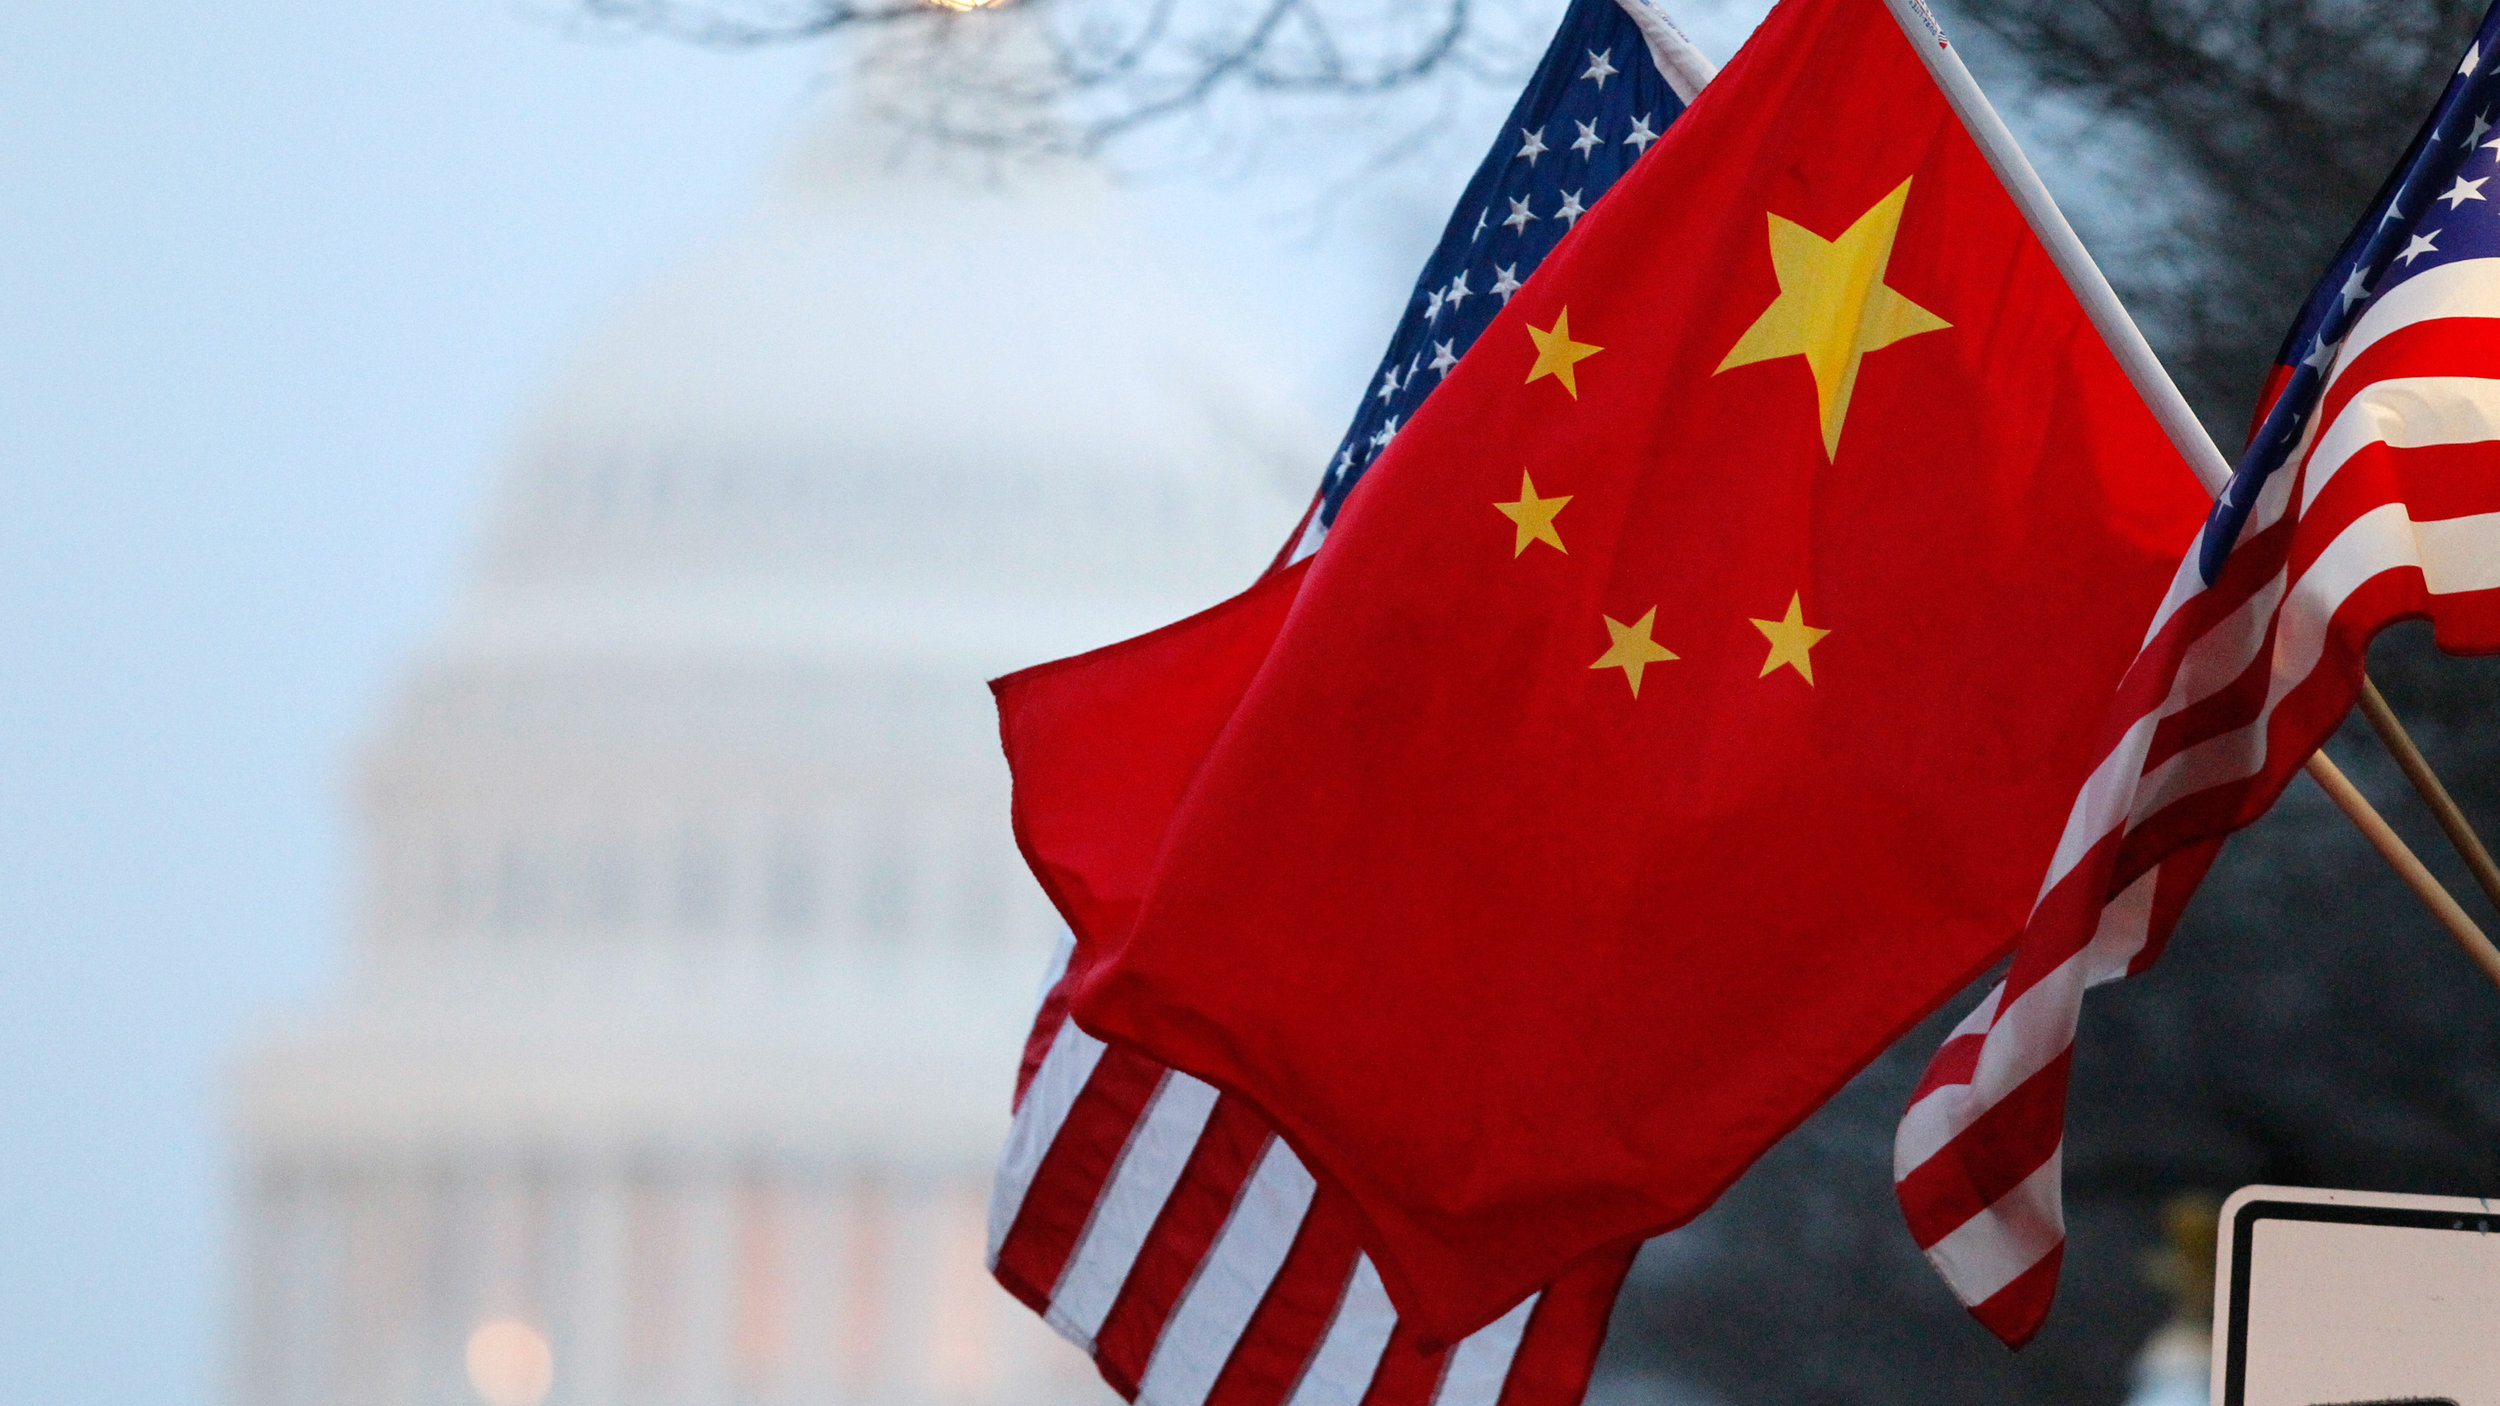 U.S. and Chinese Flags (Council on Foreign Relations)